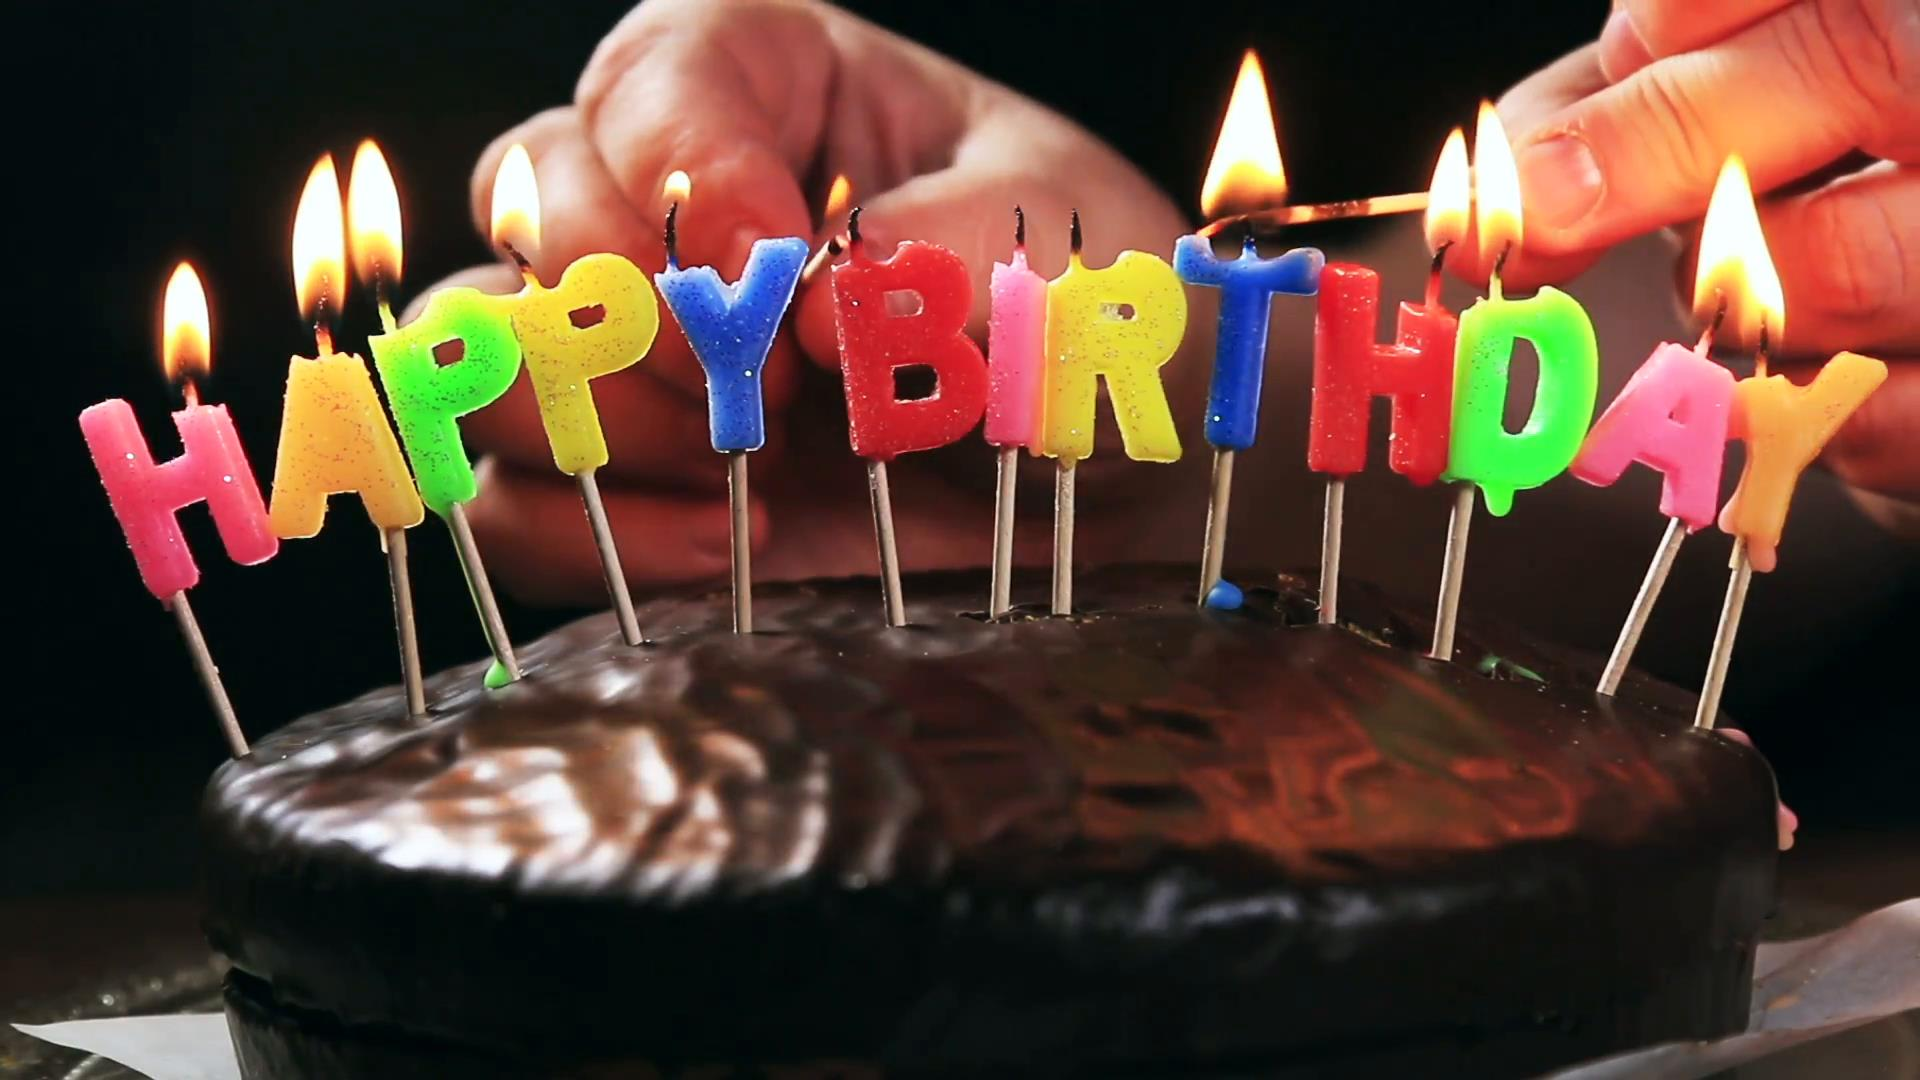 picture of birthday cake and candles ; lighted-candles-on-a-happy-birthday-cake-candles-with-the-words-happy-birthday-on-a-chocolate-cake-hand-lights-a-candle-happy-birthday-time-lapse_rgfcpc0e__F0009